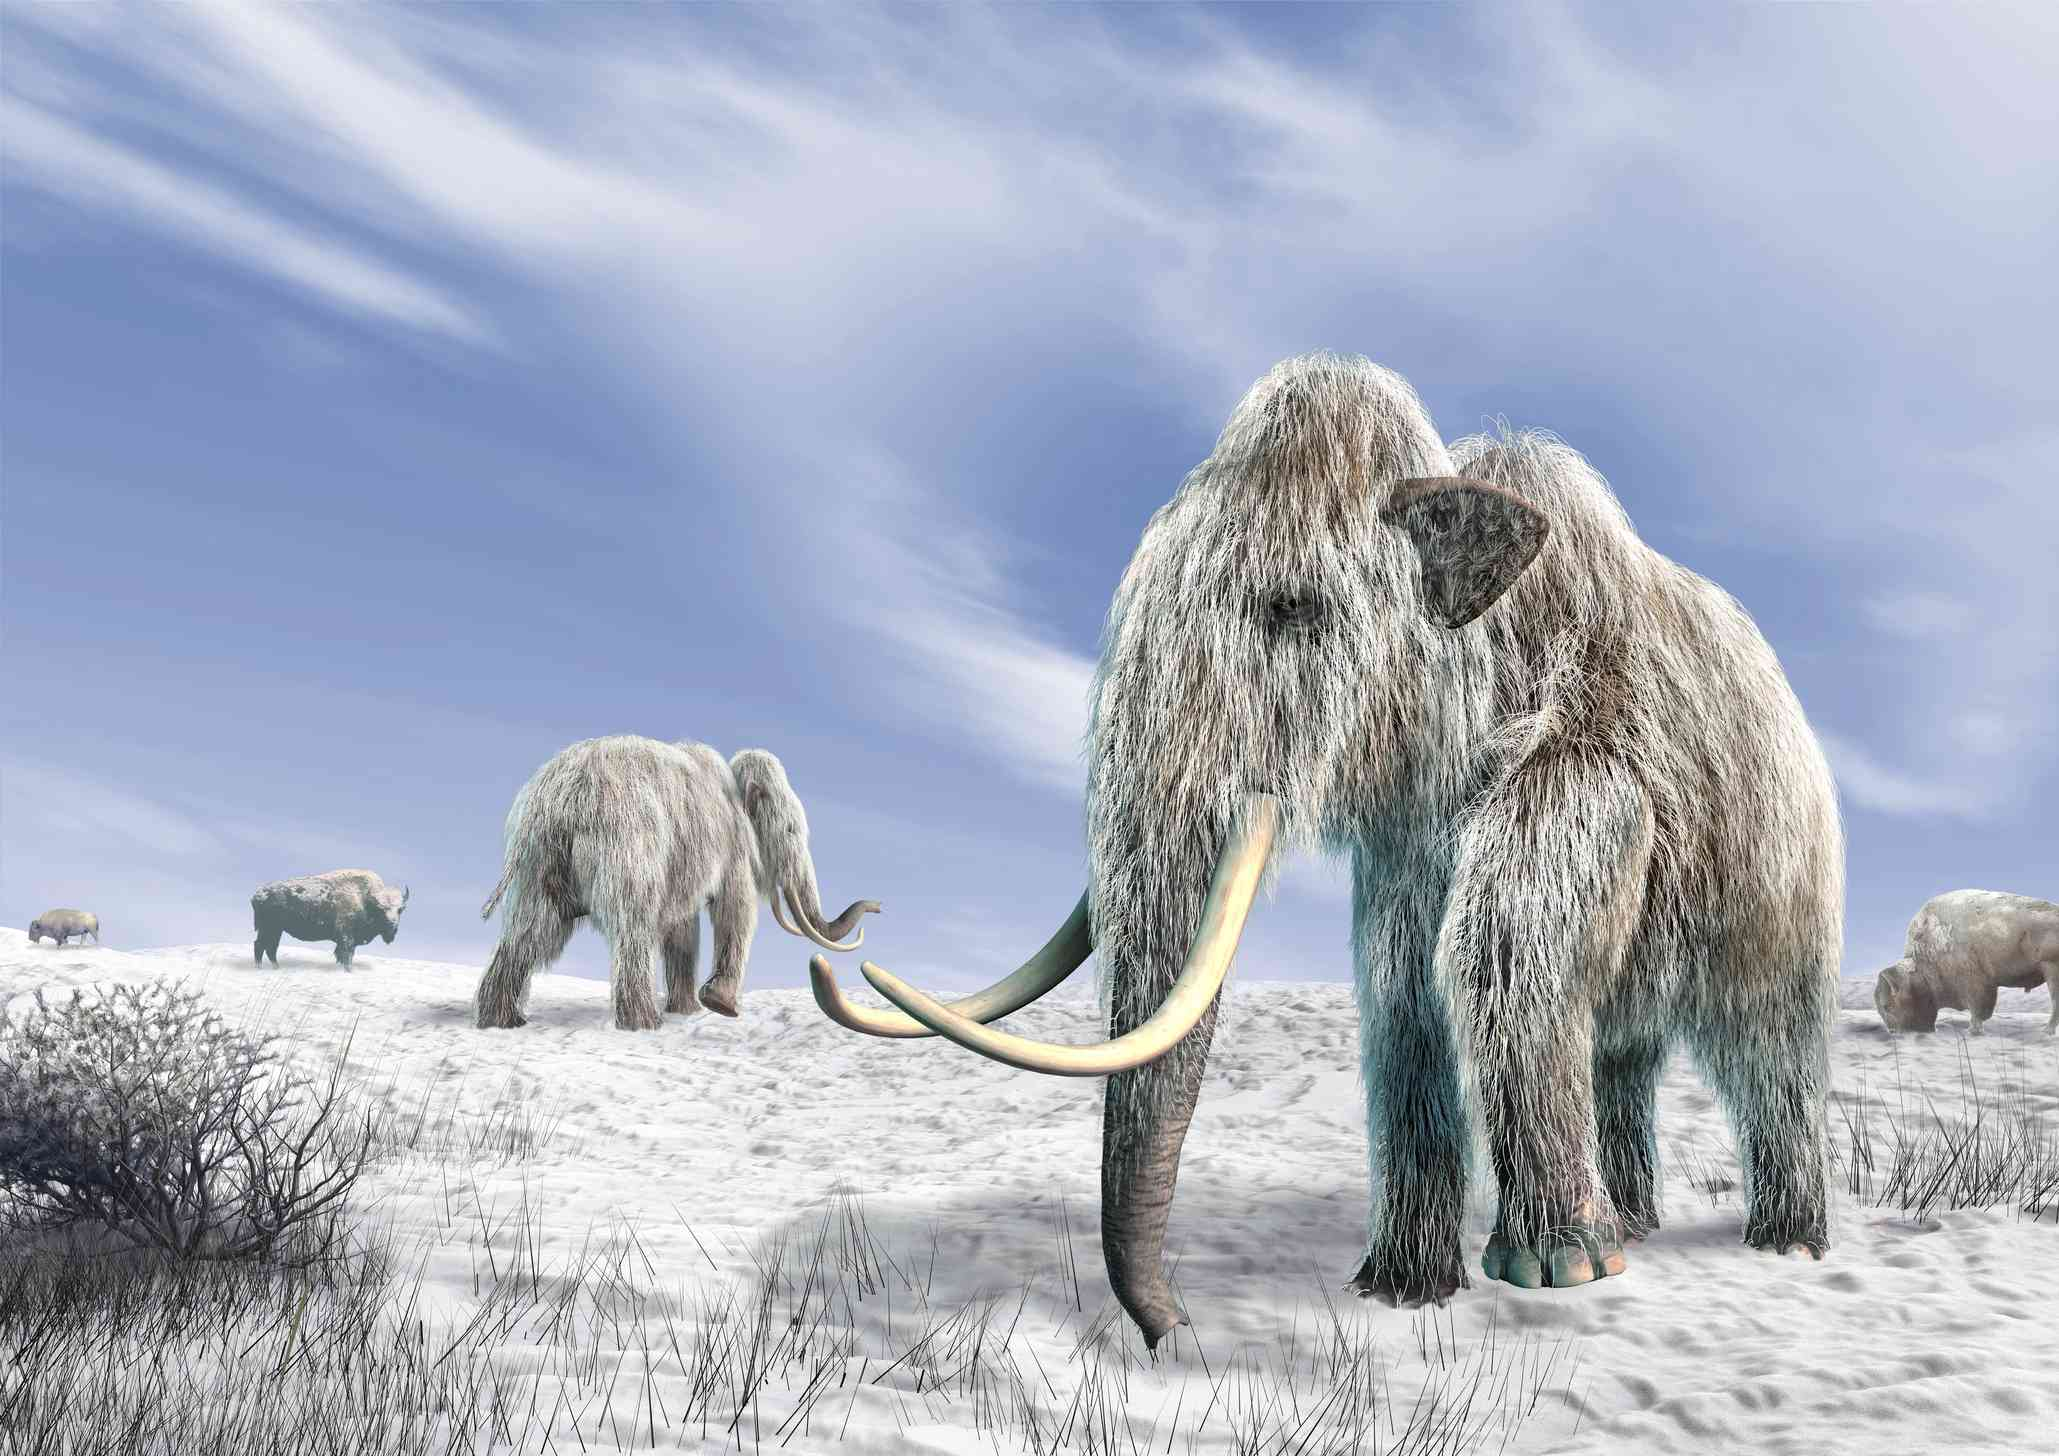 artwork of woolly mammoths walking across snow with long tusks and icy fur